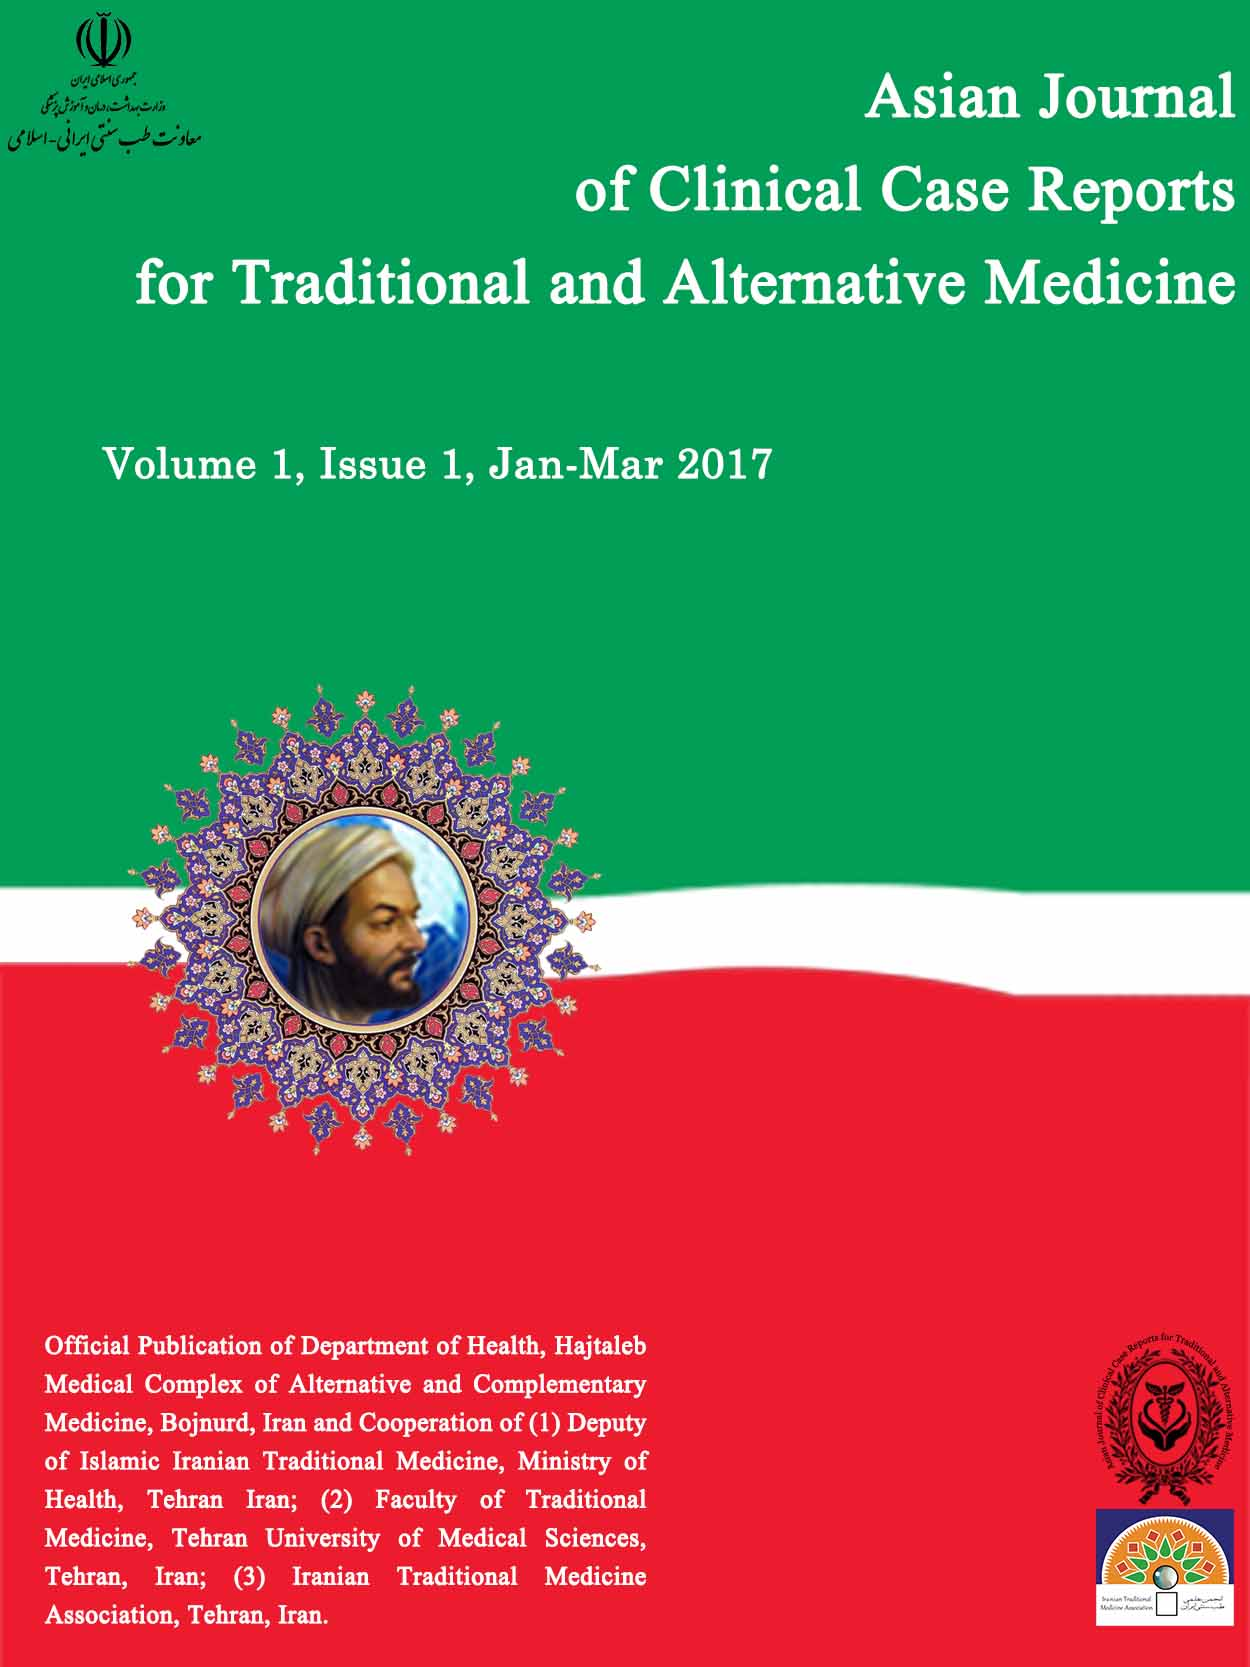 Asian Journal of Clinical Case Reports for Traditional and Alternative Medicine